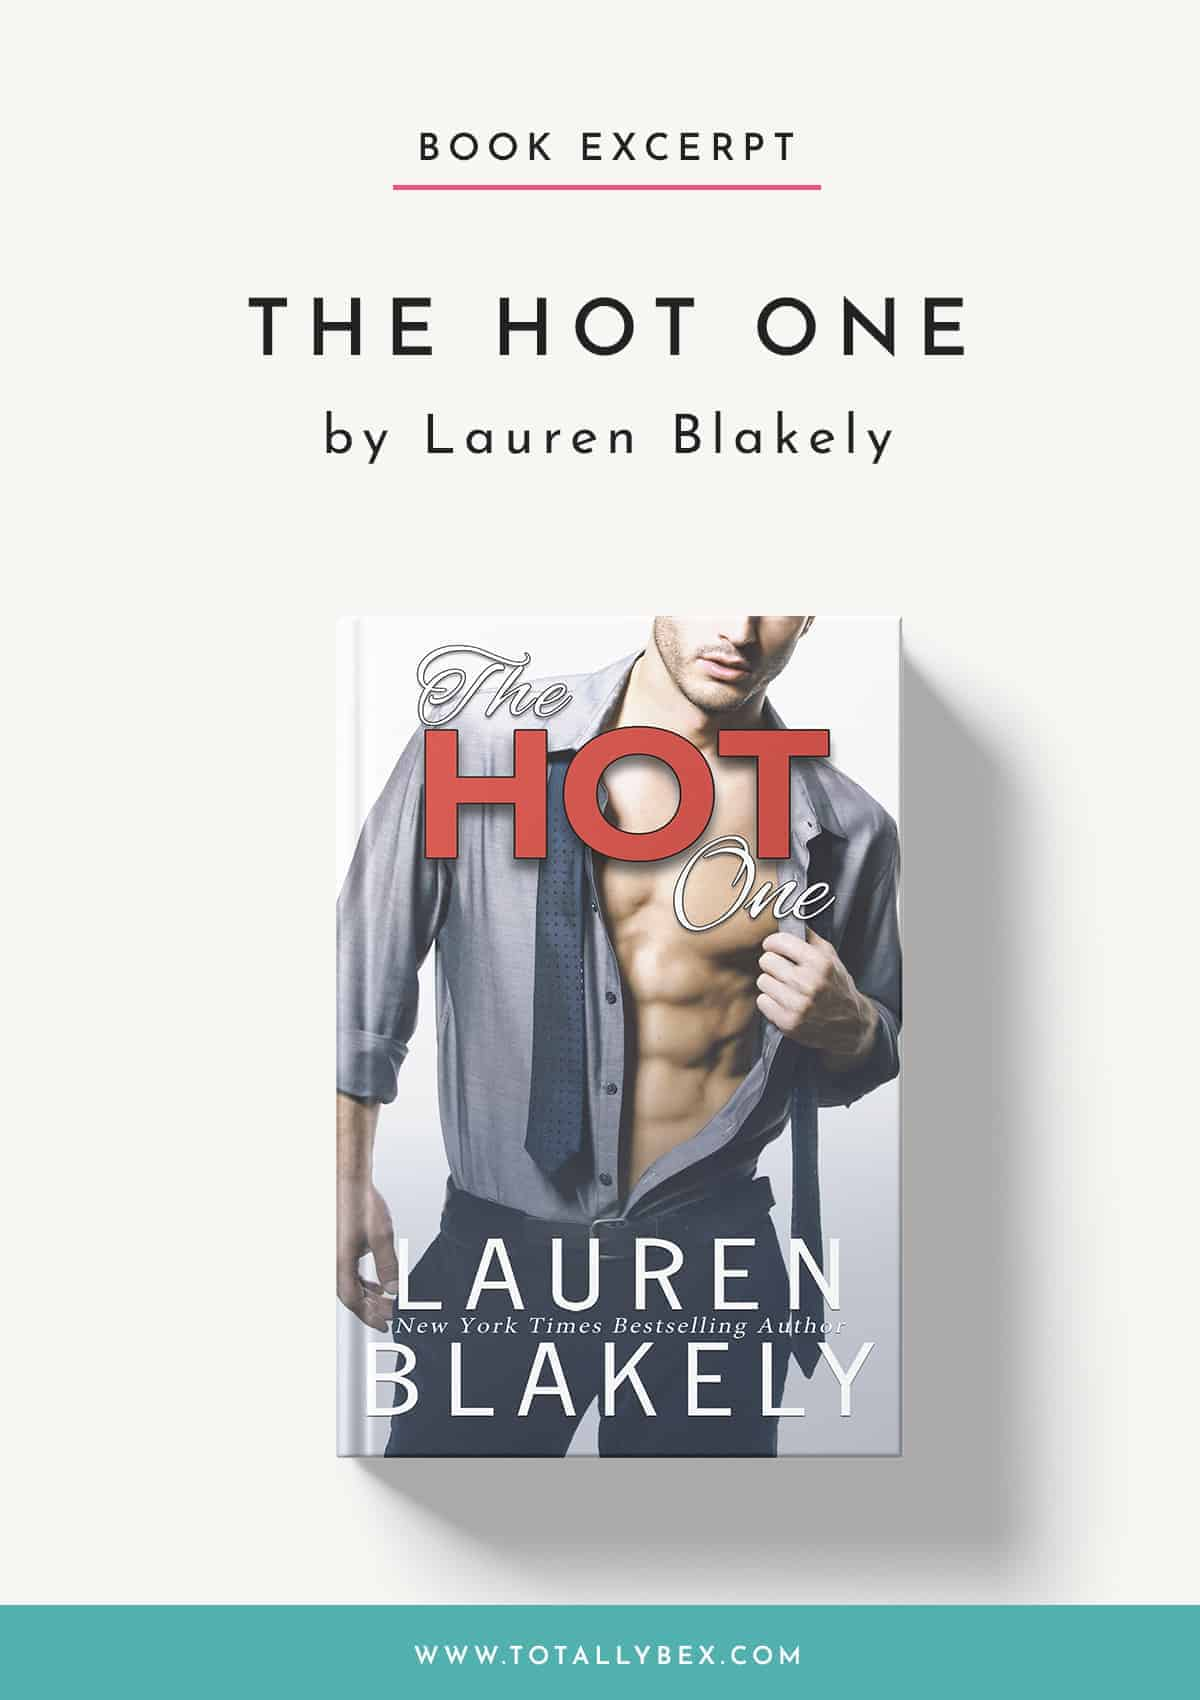 The Hot One by Lauren Blakely-Book Excerpt